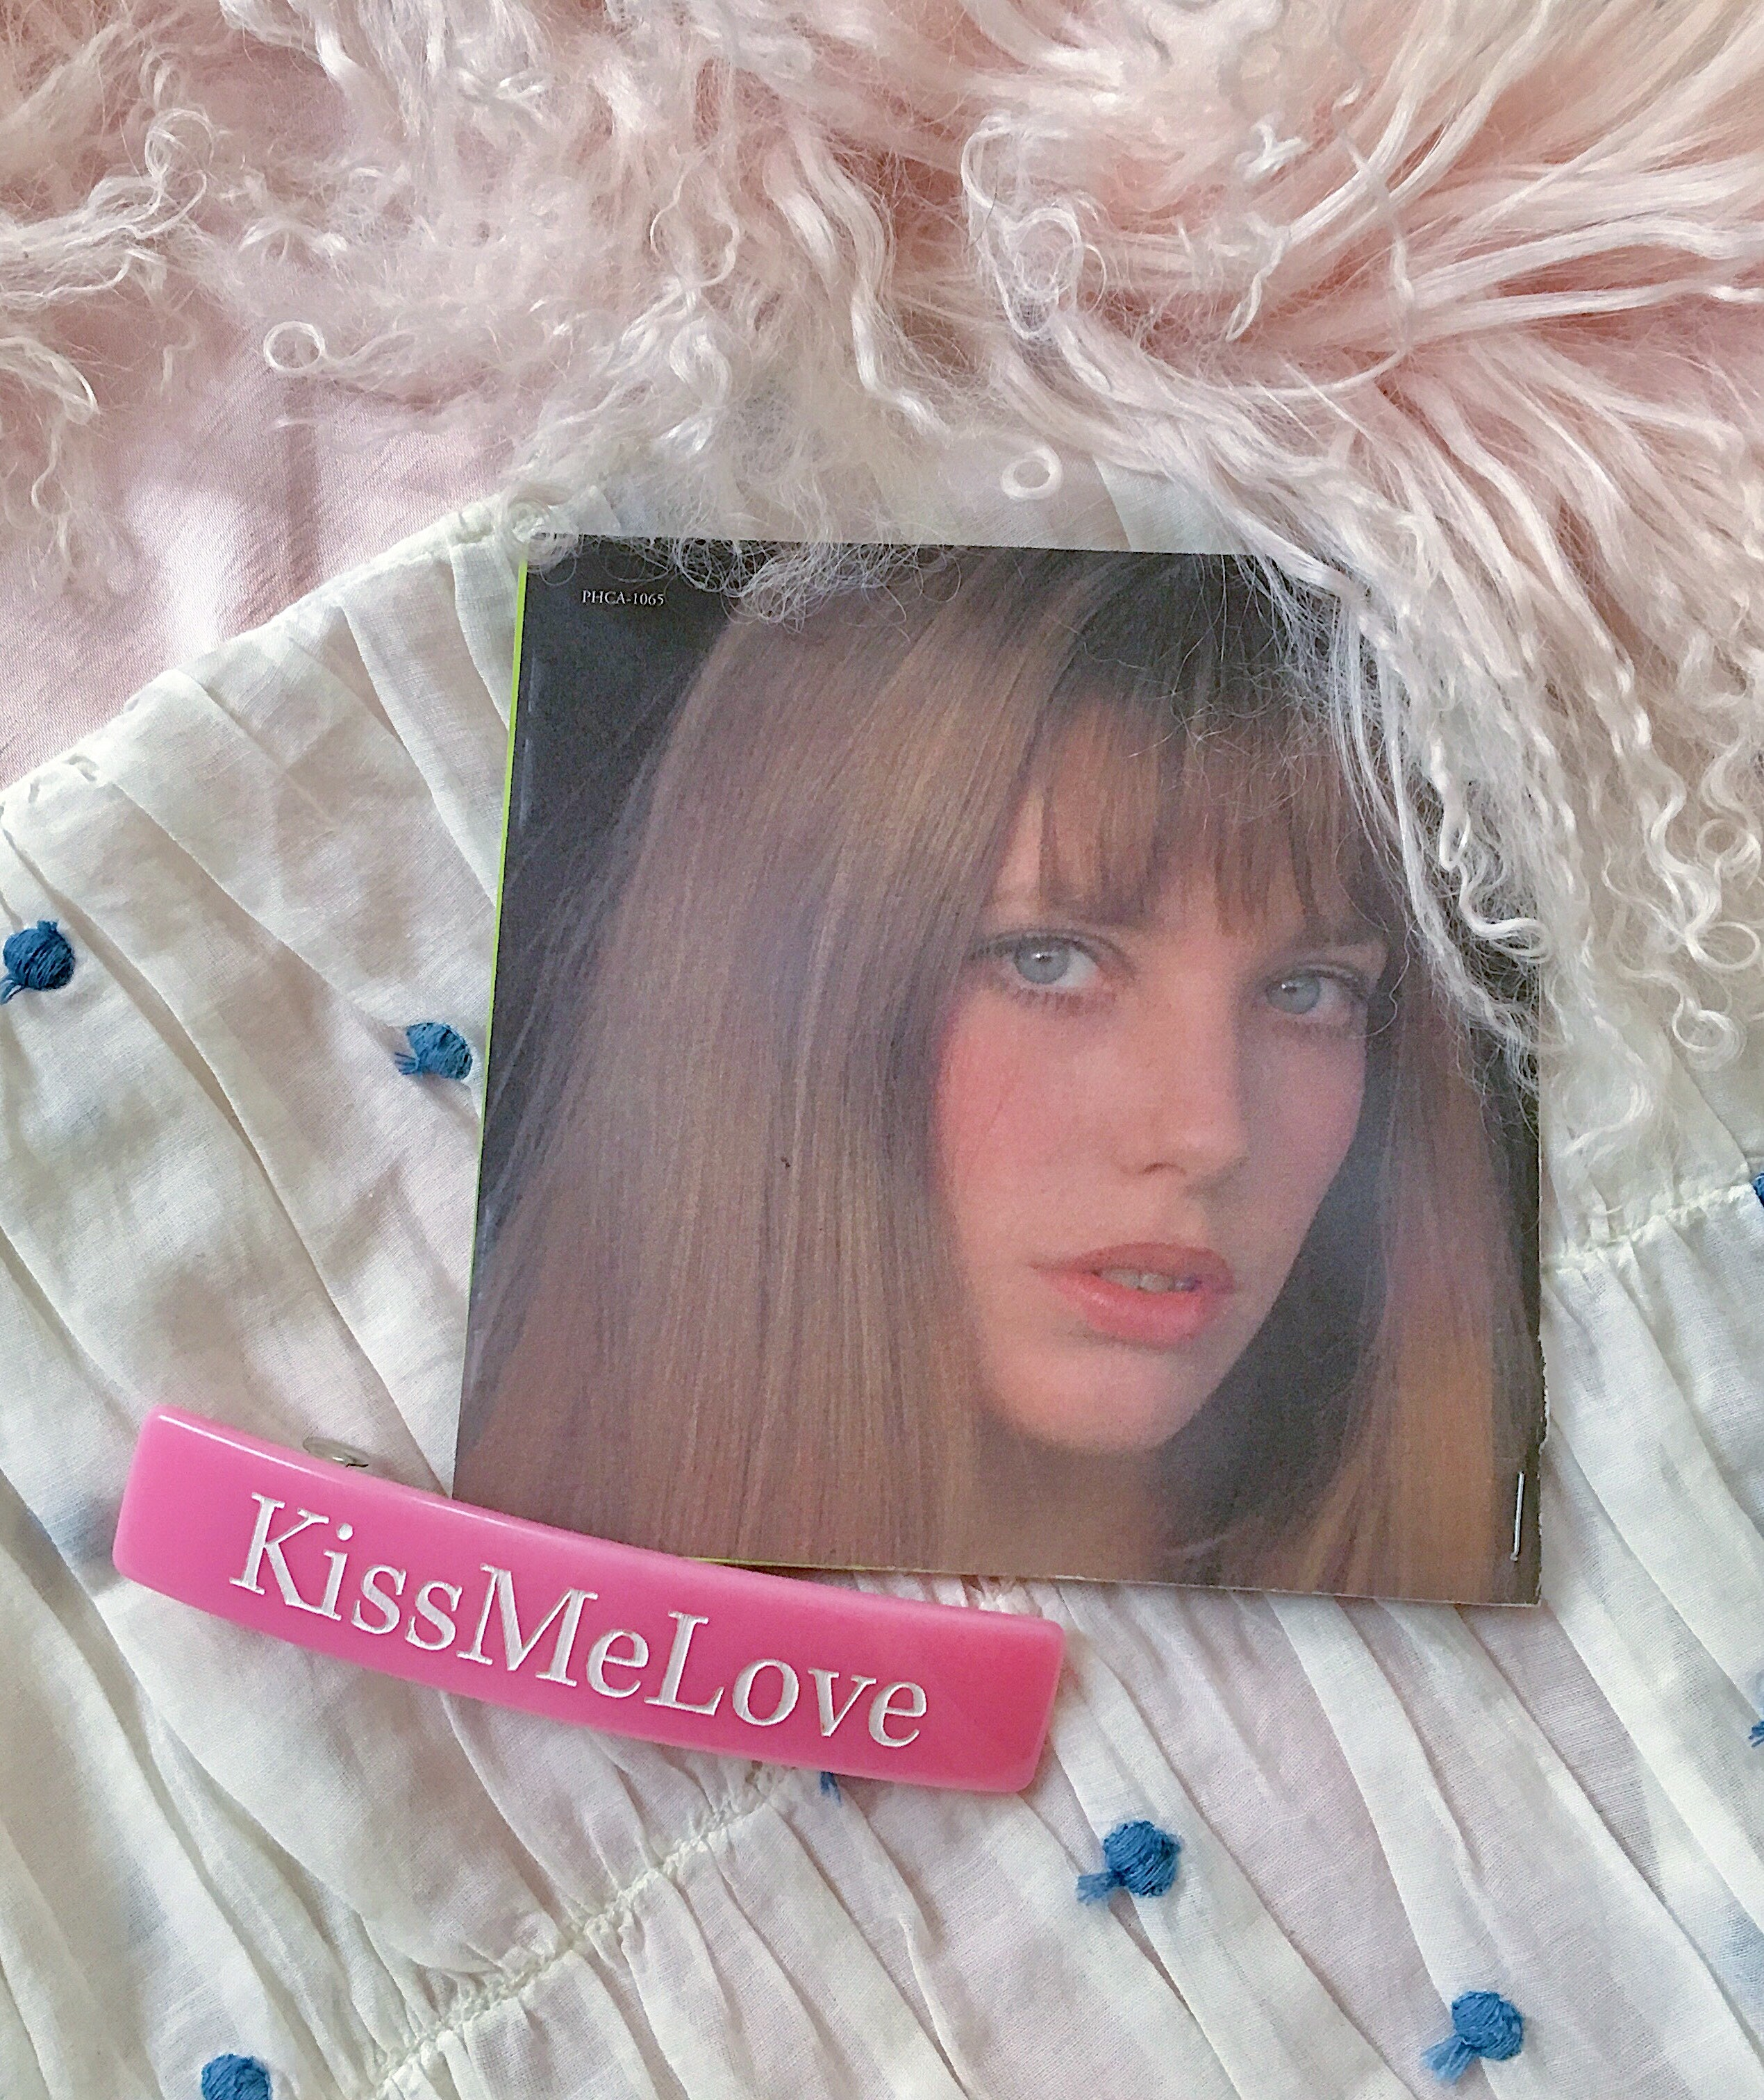 KissMeLove barrette